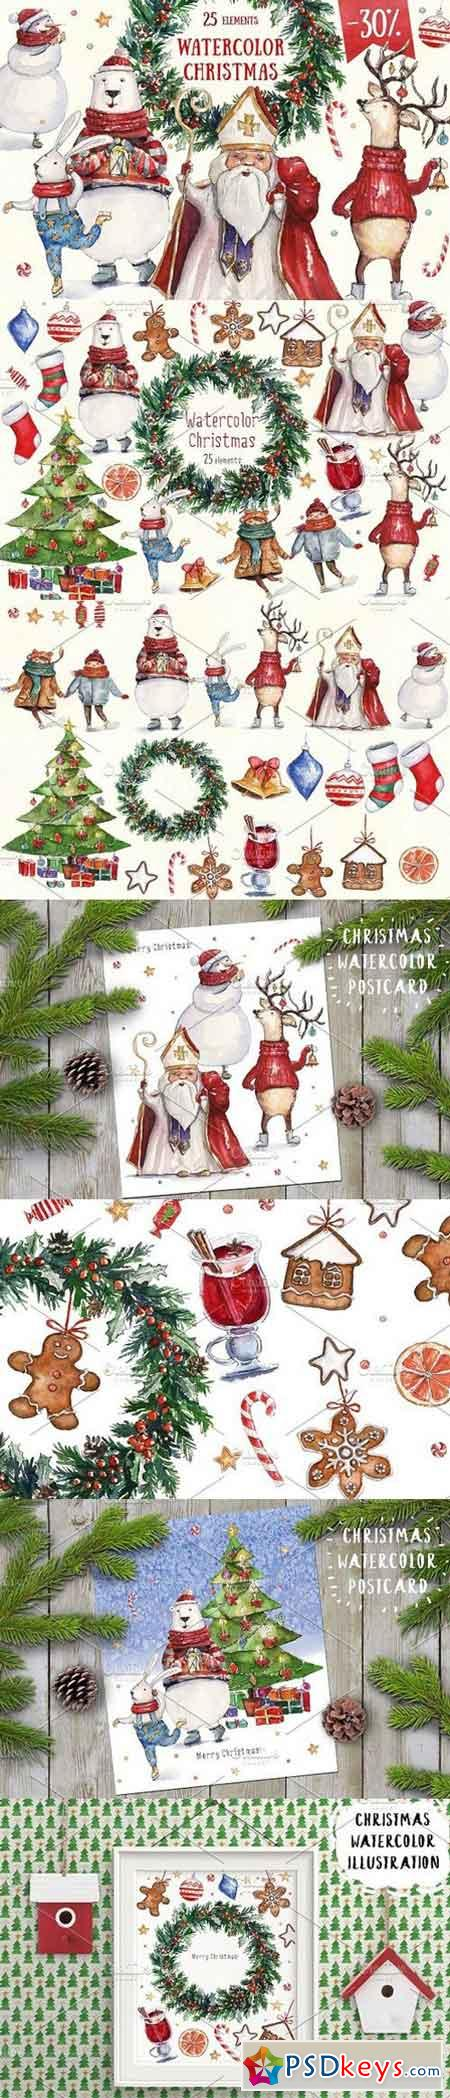 Watercolor Christmas collection 1110723